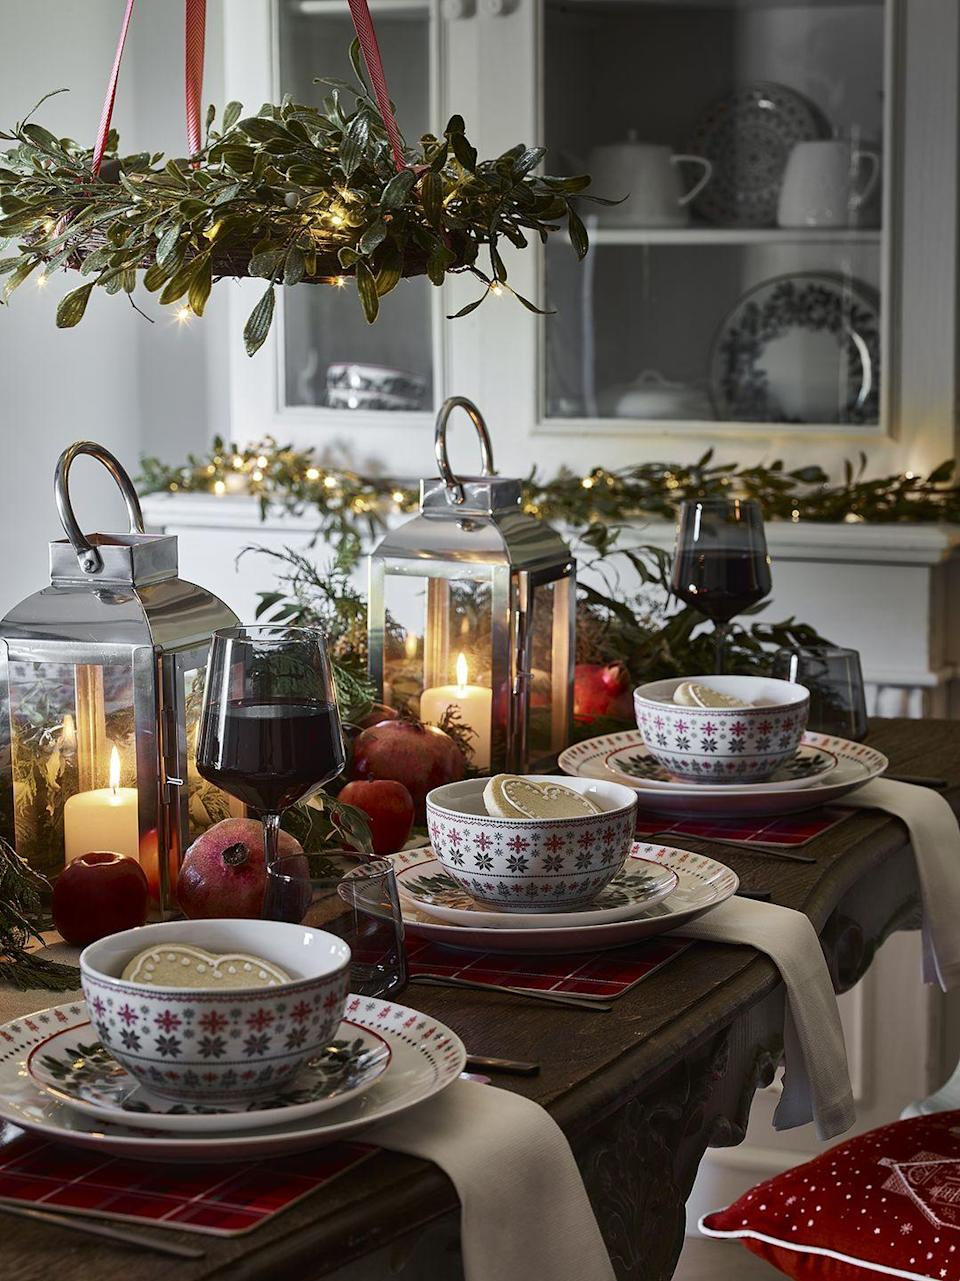 <p>Bring some holiday cheer to your dining table with George Home's wonderfully traditional range. As part of the 'How We Roll' trend, discover rich reds, greens, tartan prints, and festive prints to give a truly nostalgic feel.</p>